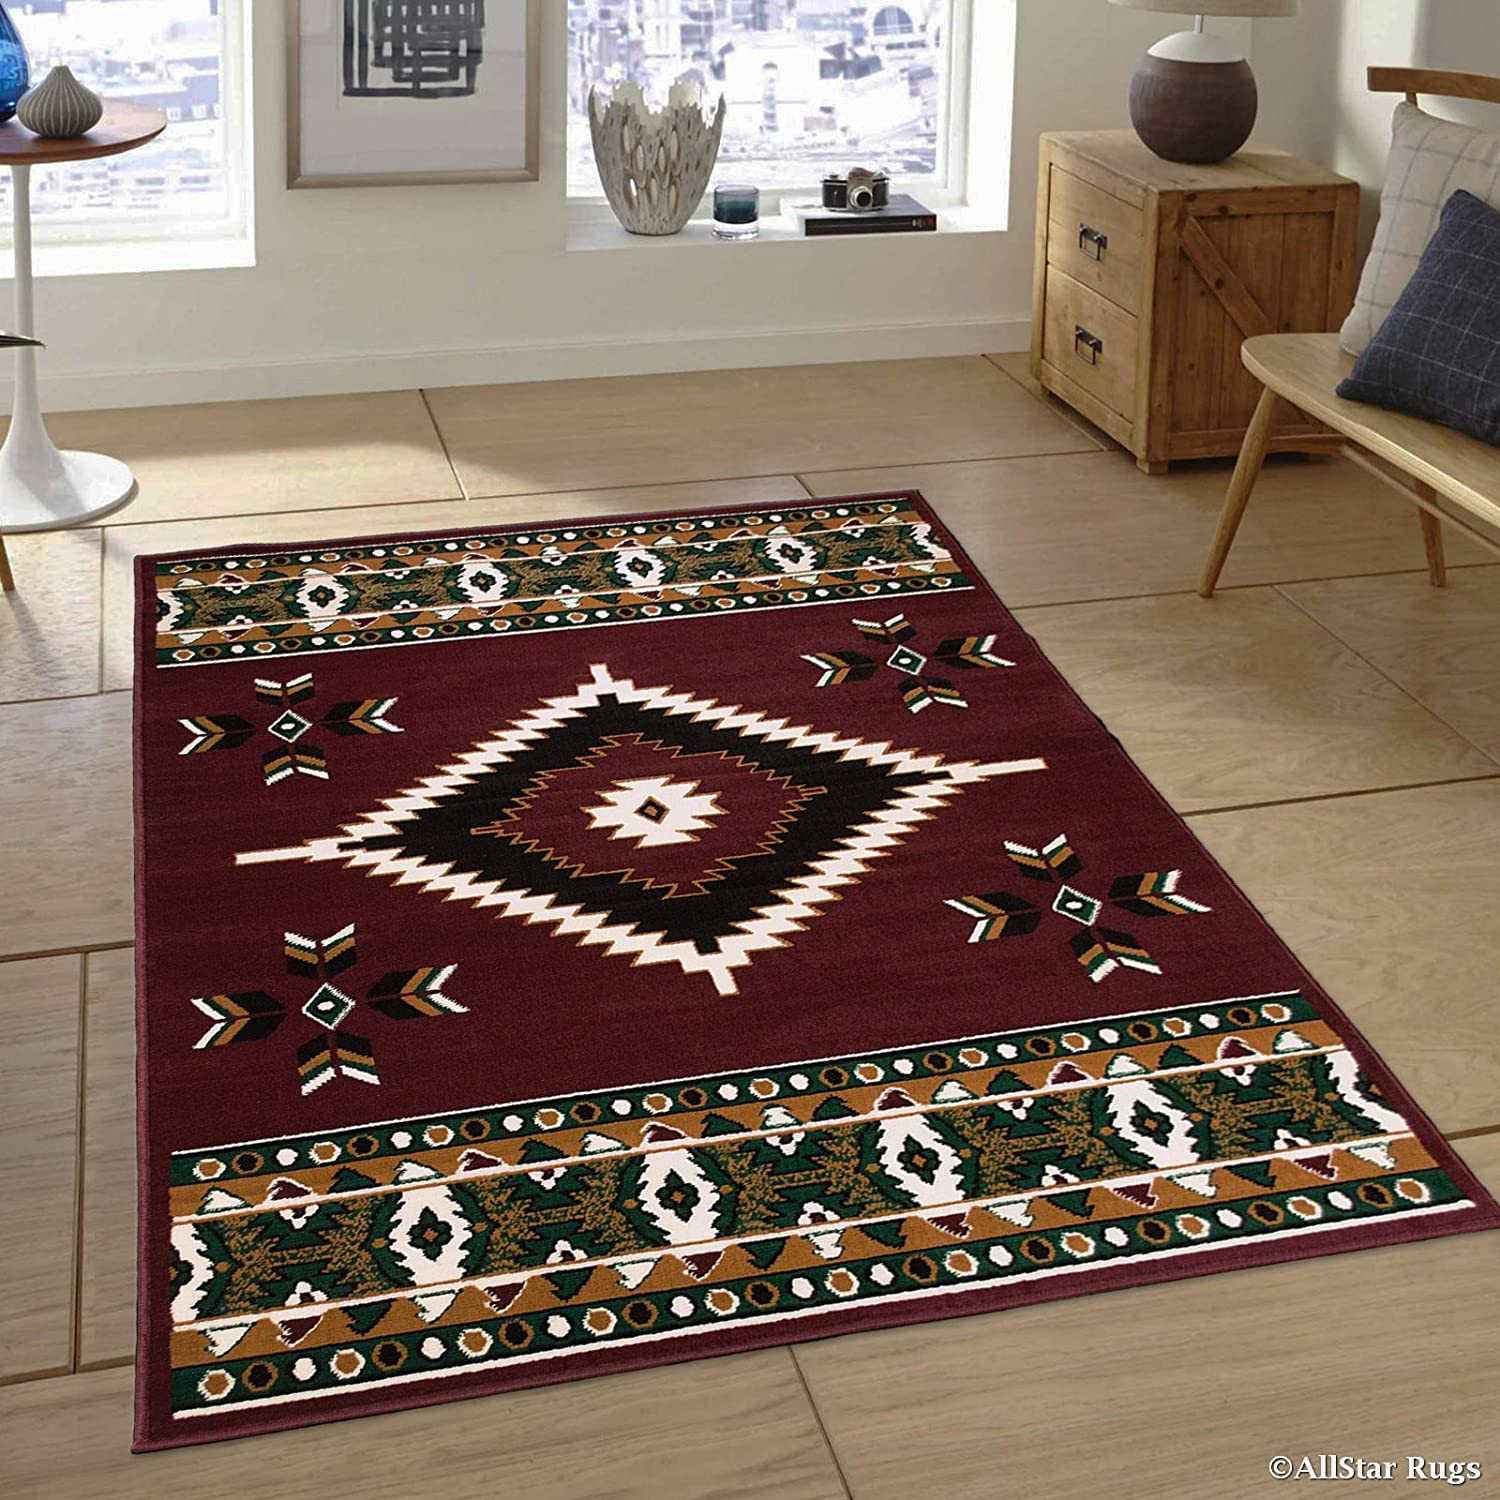 Amazon Com Allstar 5x7 Burgundy And Mocha Southwestern Rectangular Accent Rug With Ivory Espresso And Hunter Green Aztec Design 5 2 X 7 0 Home Kitchen